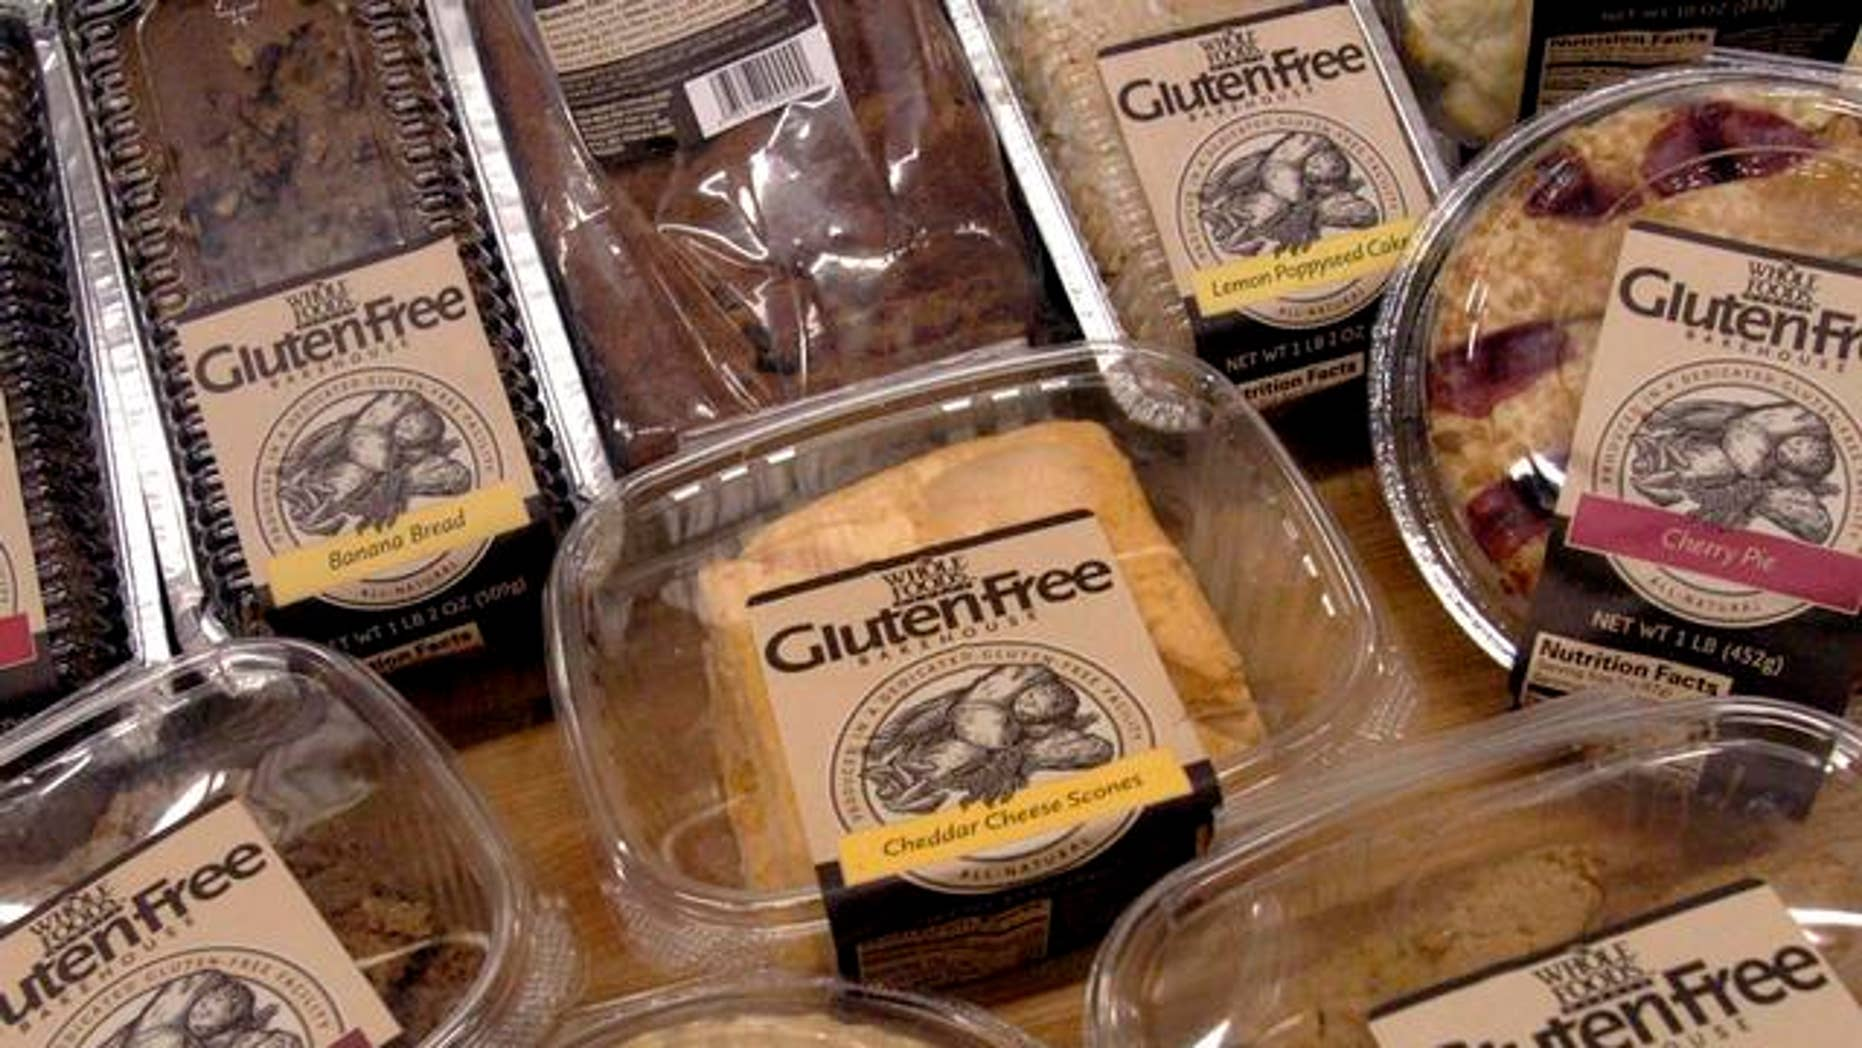 """** FILE ** A sample of some of the 27 gluten-free products are displayed, in this Oct. 5, 2004 file photo, at the Whole Foods Market Gluten-Free Bakehouse in Morrisville, N.C. Each label reads """"Produced in a Dedicated Gluten-Free Facility."""" Once banished to the dusty bottom shelves of obscure grocers, the gluten-free revolution is surfacing in the aisles of major supermarkets. (AP Photo/Karen Tam)"""